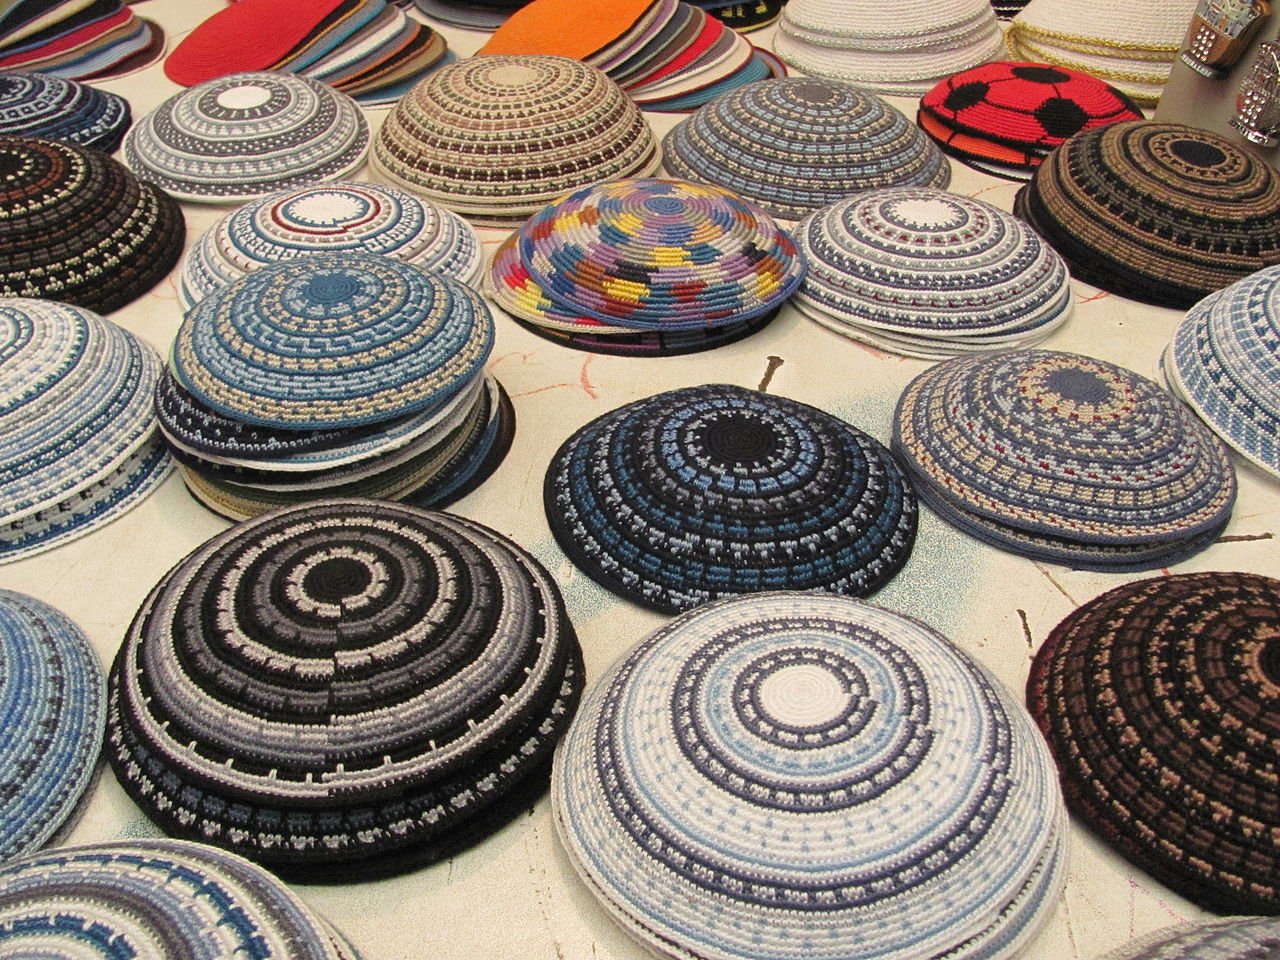 Handmade yarmulkes at a stand in the Old City of Jerusalem. Yarmulkes are described in text.